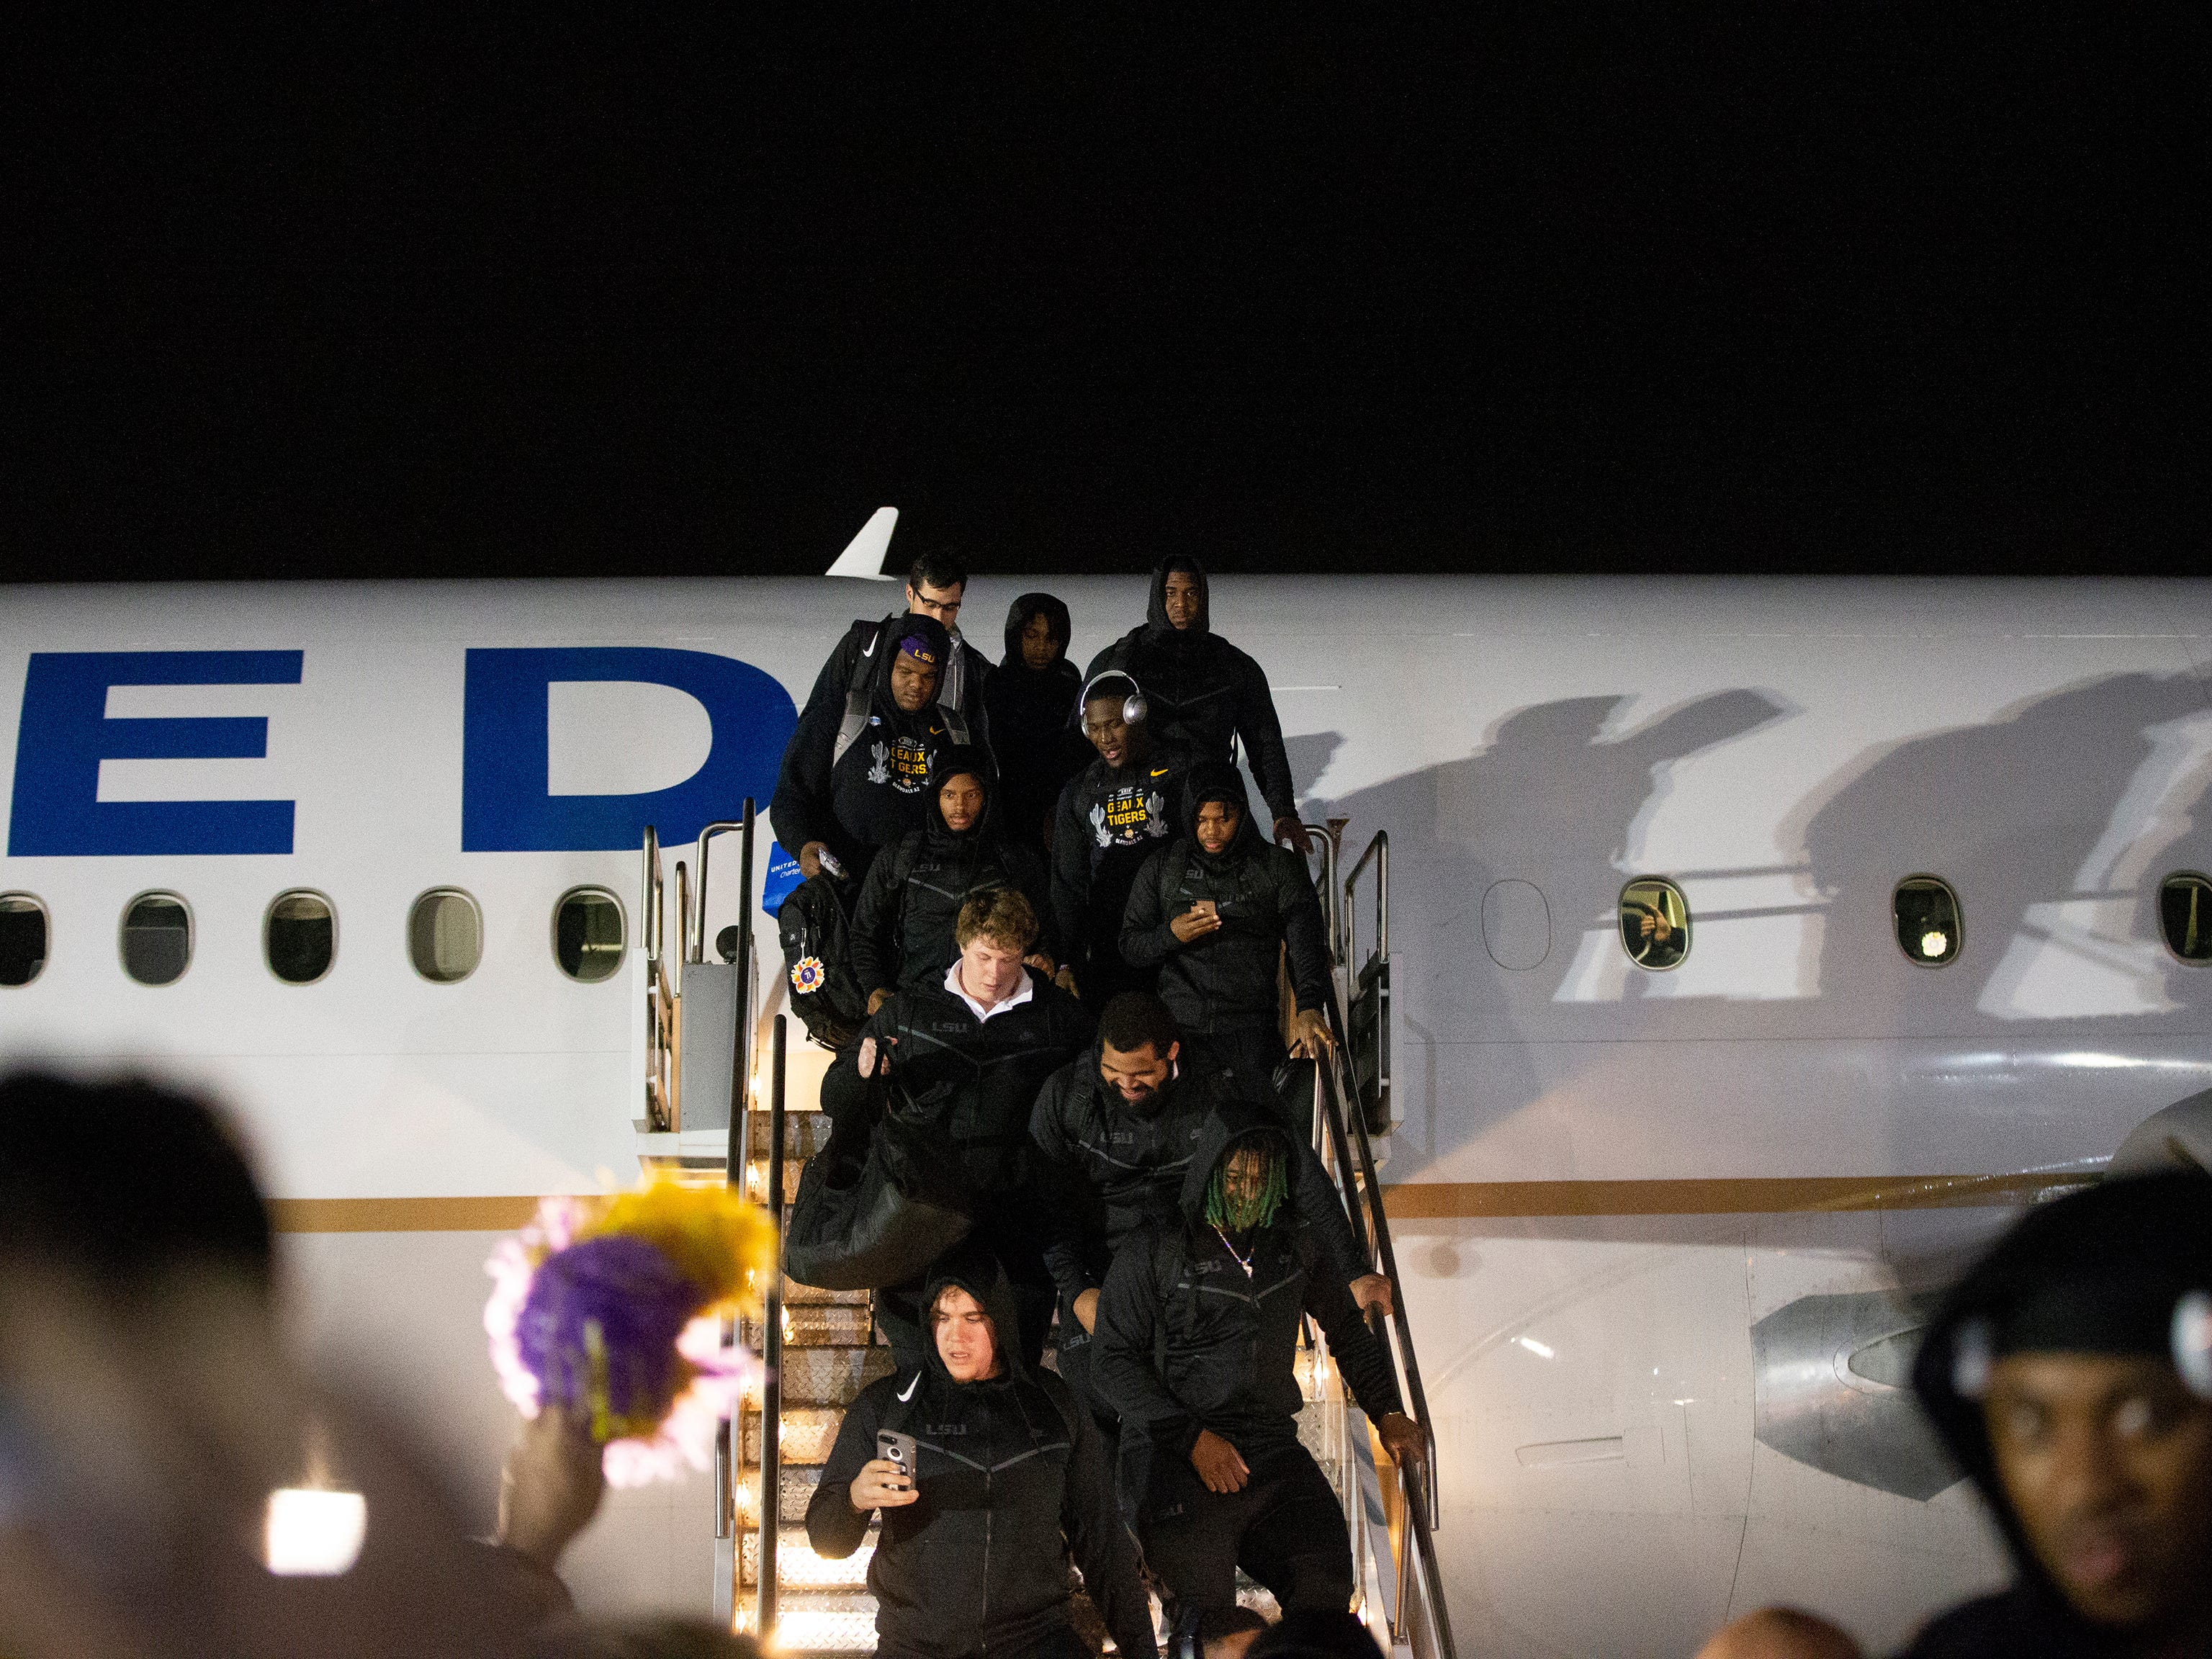 LSU arrives at Sky Harbor International Airport in Phoenix on December 27. LSU will face Central Florida in the Fiesta Bowl on New Year's Day